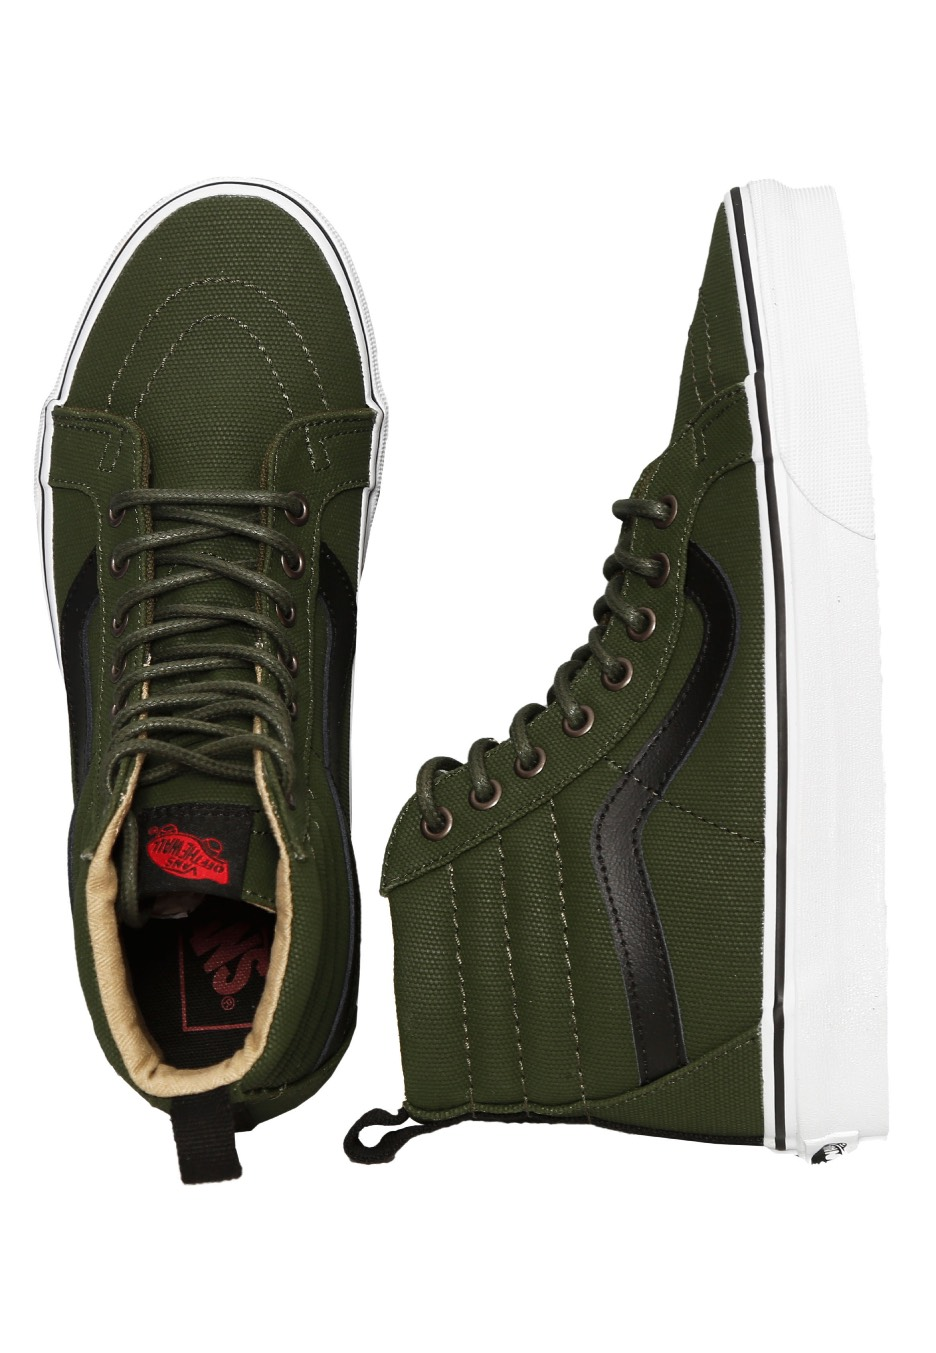 1f0692cecc7 Vans - Sk8-Hi Reissue PT Military Twill Rifle Green True White - Girl Shoes  - Impericon.com UK